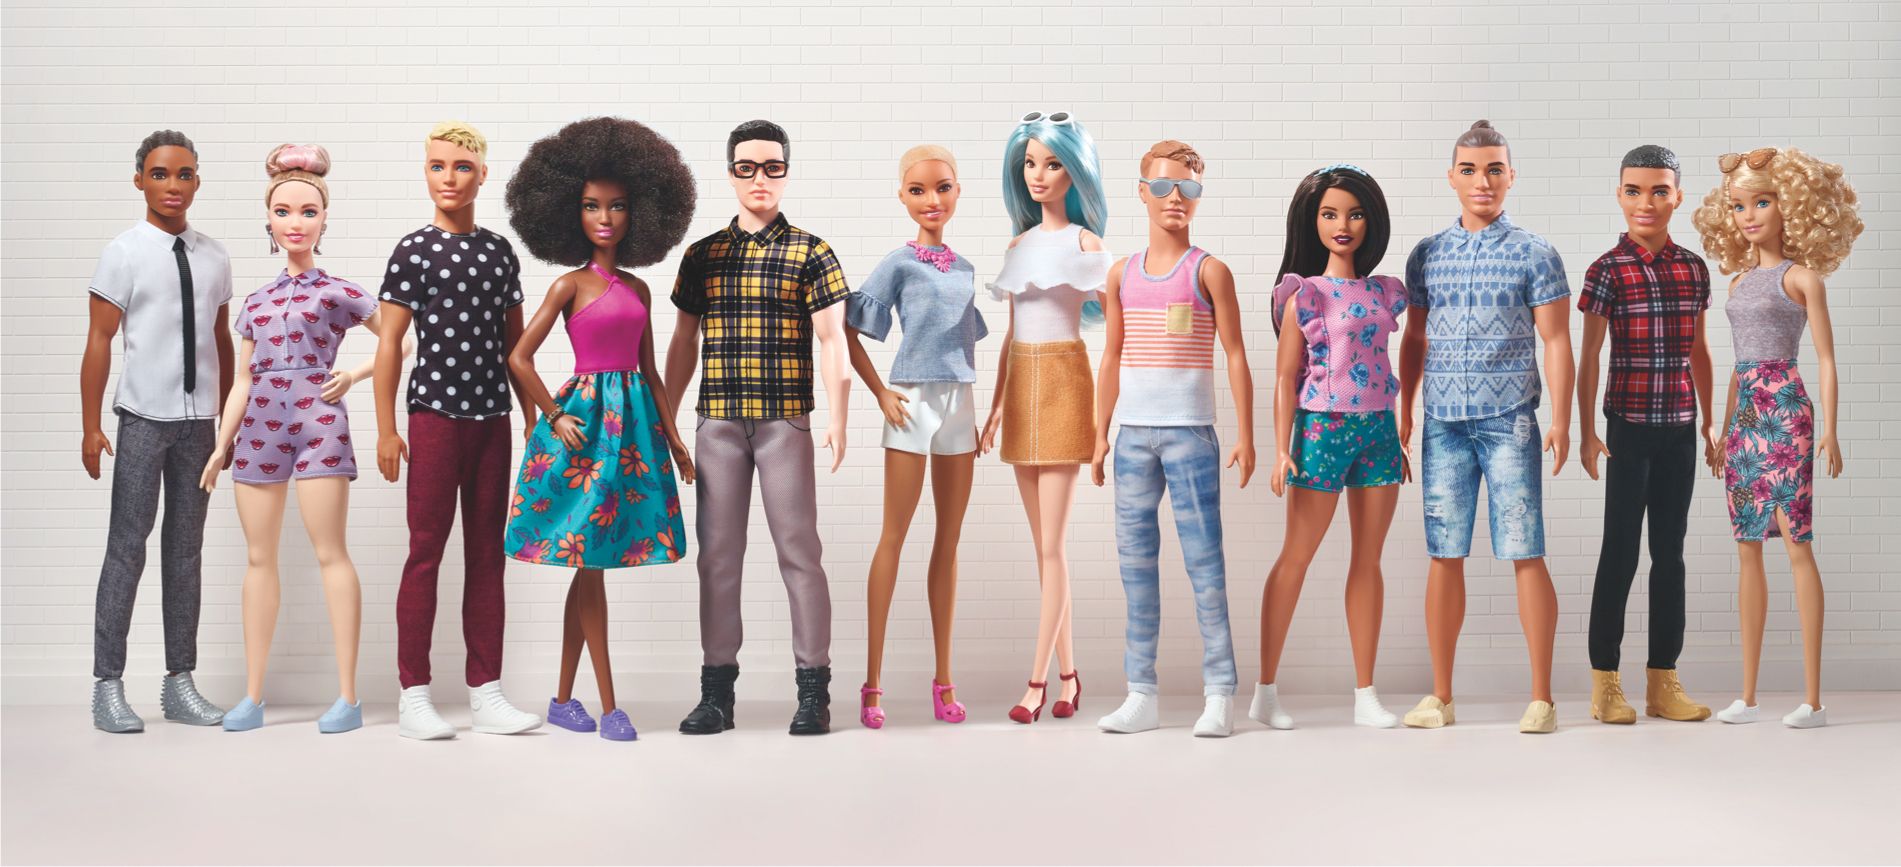 Mattel's New Ken Dolls: What This Means for Retailers, Sales and Consumer Behavior